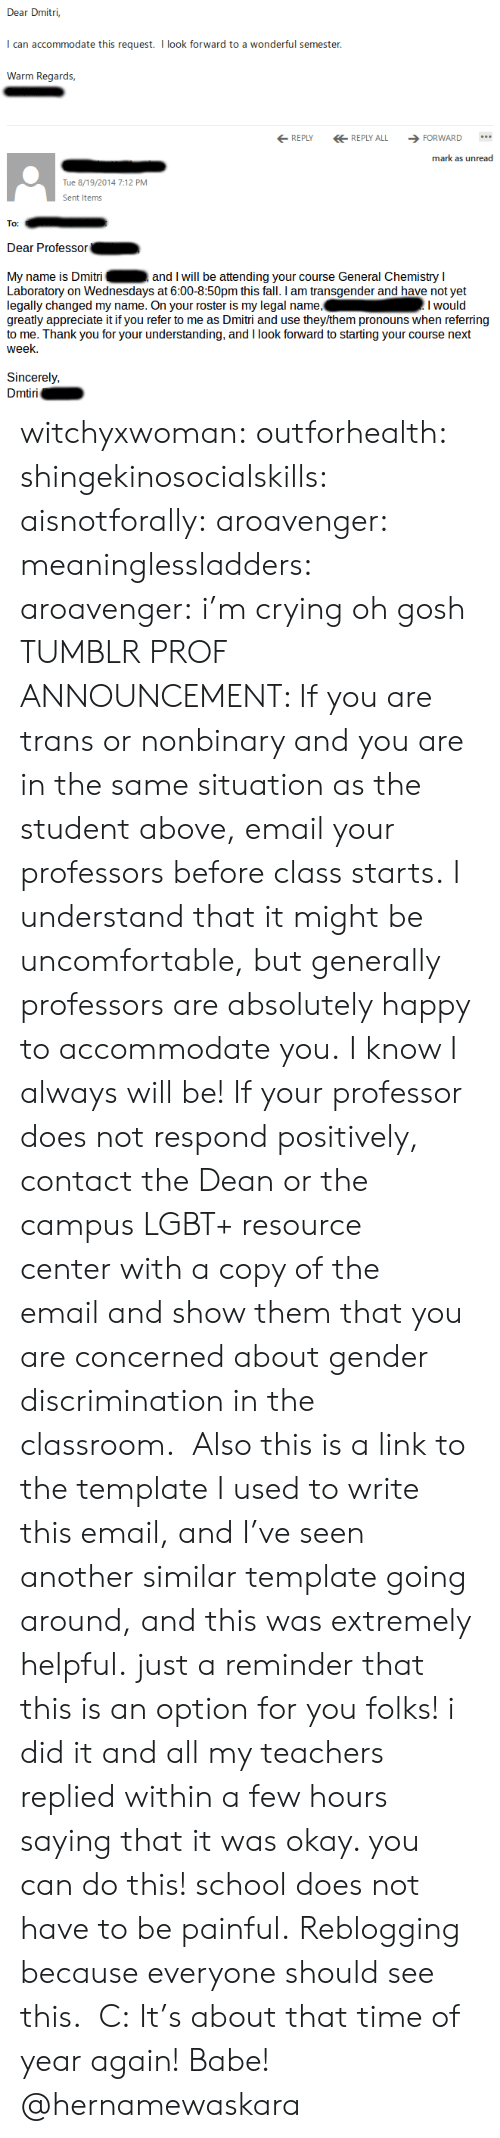 Wednesdays: Dear Dmitri,  can accommodate this request. I look forward to a wonderful semester  Wann Reak  REPLYREPLY ALL FORWARD  mark as unread  Tue 8/19/2014 7:12 PM  Sent Item  To:  Dear Professor  My name is Dmitri  Laboratory on Wednesdays at 6:00-8:50pm this fall. I am transgender and have not yet  legally changed my name. On your roster is my legal name,Iwould  greatly appreciate it if you refer to me as Dmitri and use they/them pronouns when referring  to me. Thank you for your understanding, and I look forward to starting your course next  week.  and I will be attending your course General Chemistry I  Sincerely,  iri witchyxwoman:  outforhealth: shingekinosocialskills:  aisnotforally:  aroavenger:  meaninglessladders:  aroavenger:  i'm crying oh gosh  TUMBLR PROF ANNOUNCEMENT: If you are trans or nonbinary and you are in the same situation as the student above,email your professors before class starts.I understand that it might be uncomfortable, but generally professors are absolutely happy to accommodate you.I know I always will be! If your professor does not respond positively, contact the Dean or the campus LGBT+ resource centerwith a copy of the emailand show them that you are concerned about gender discrimination in the classroom.  Also this is a link to the template I used to write this email, and I've seen another similar template going around, and this was extremely helpful.  just a reminder that this is an option for you folks! i did it and all my teachers replied within a few hours saying that it was okay. you can do this! school does not have to be painful.   Reblogging because everyone should see this. C:  It's about that time of year again!   Babe! @hernamewaskara